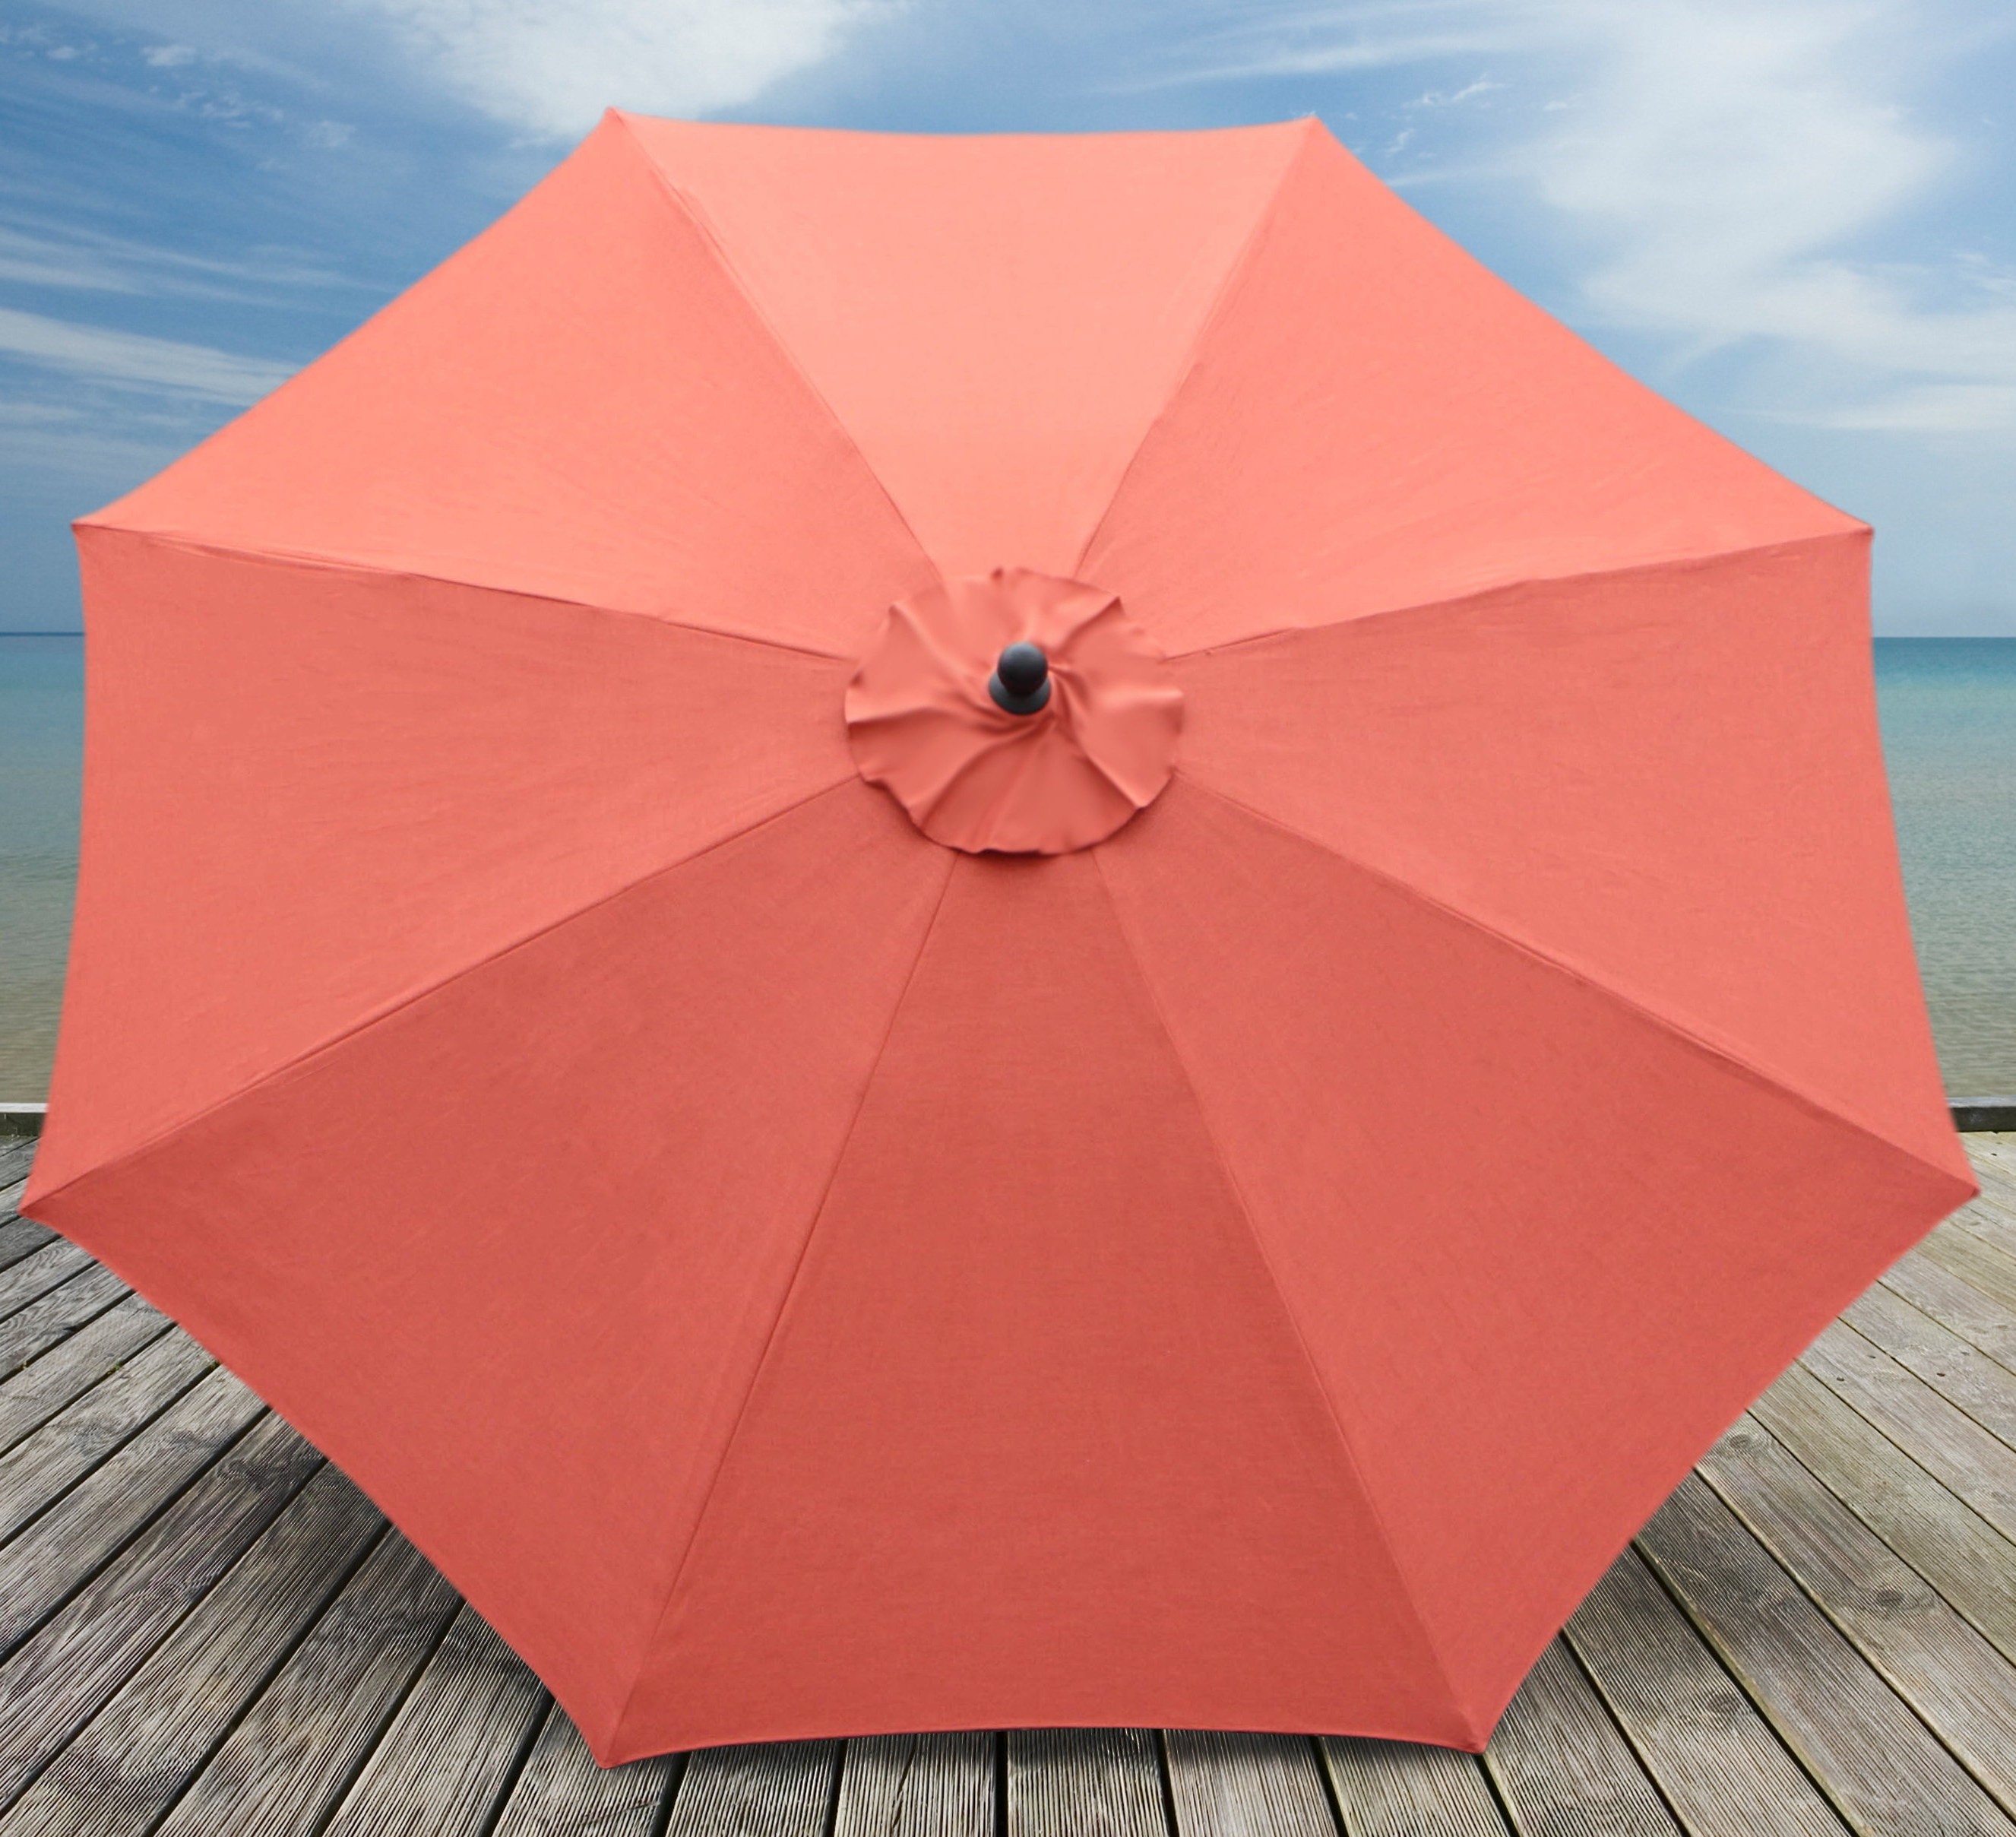 Mucci Madilyn 10' Market Sunbrella Umbrella With Most Popular Mucci Madilyn Market Sunbrella Umbrellas (View 7 of 20)